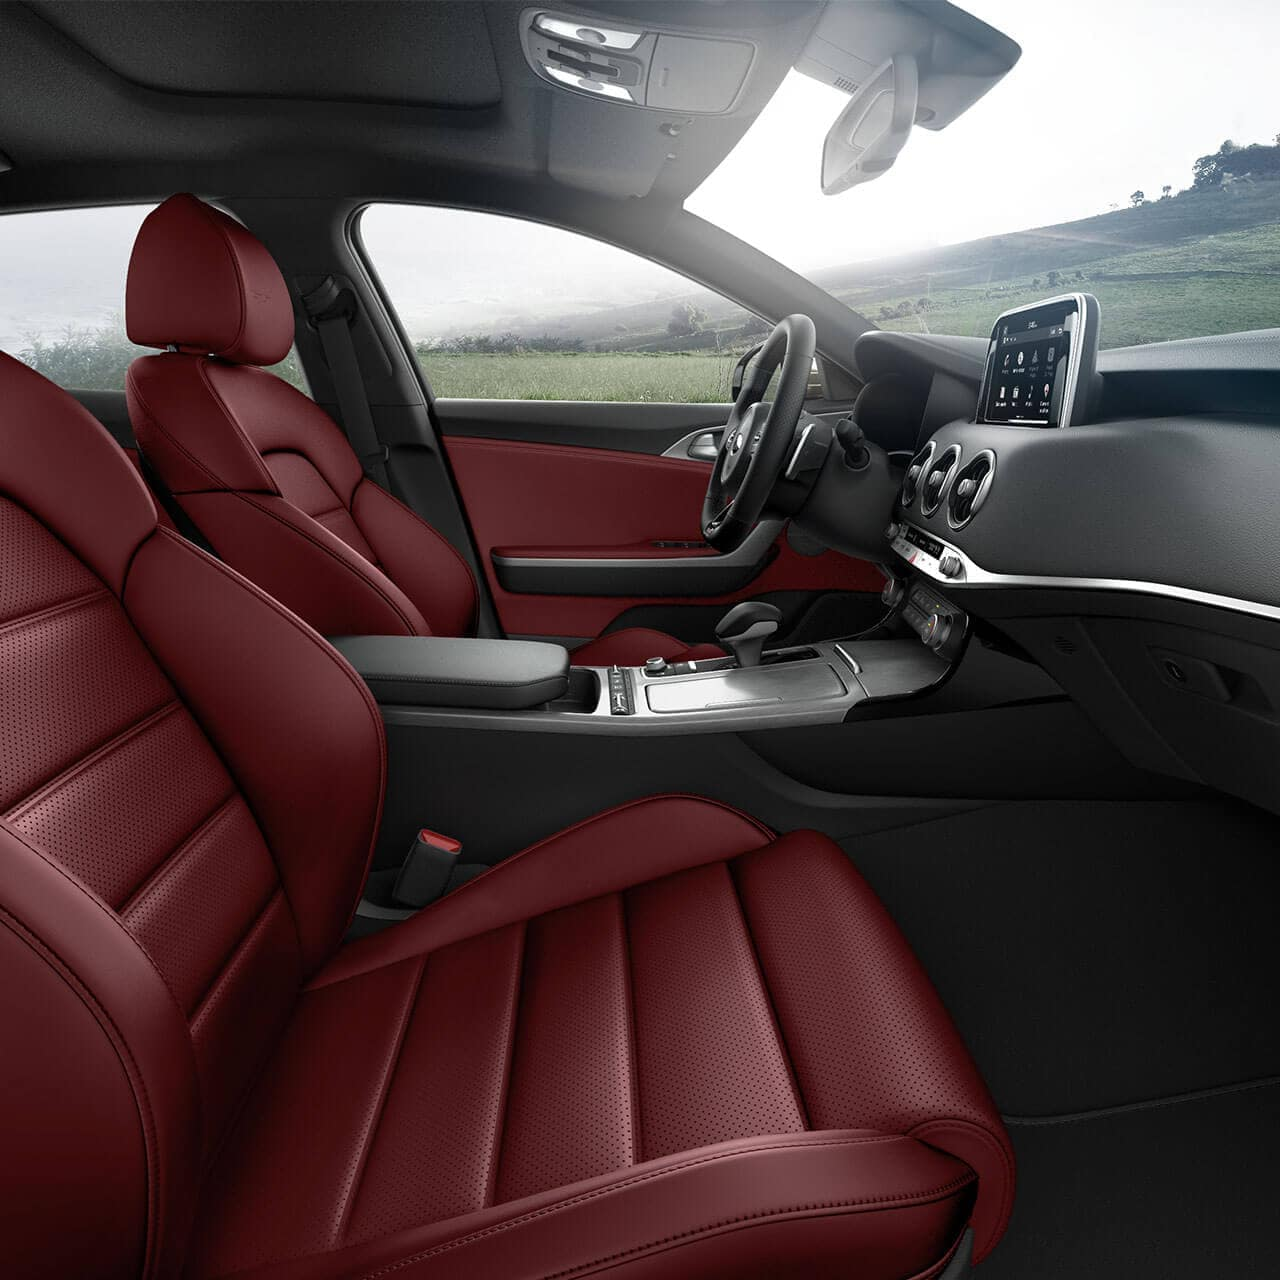 2018 Kia Stinger Interior 1